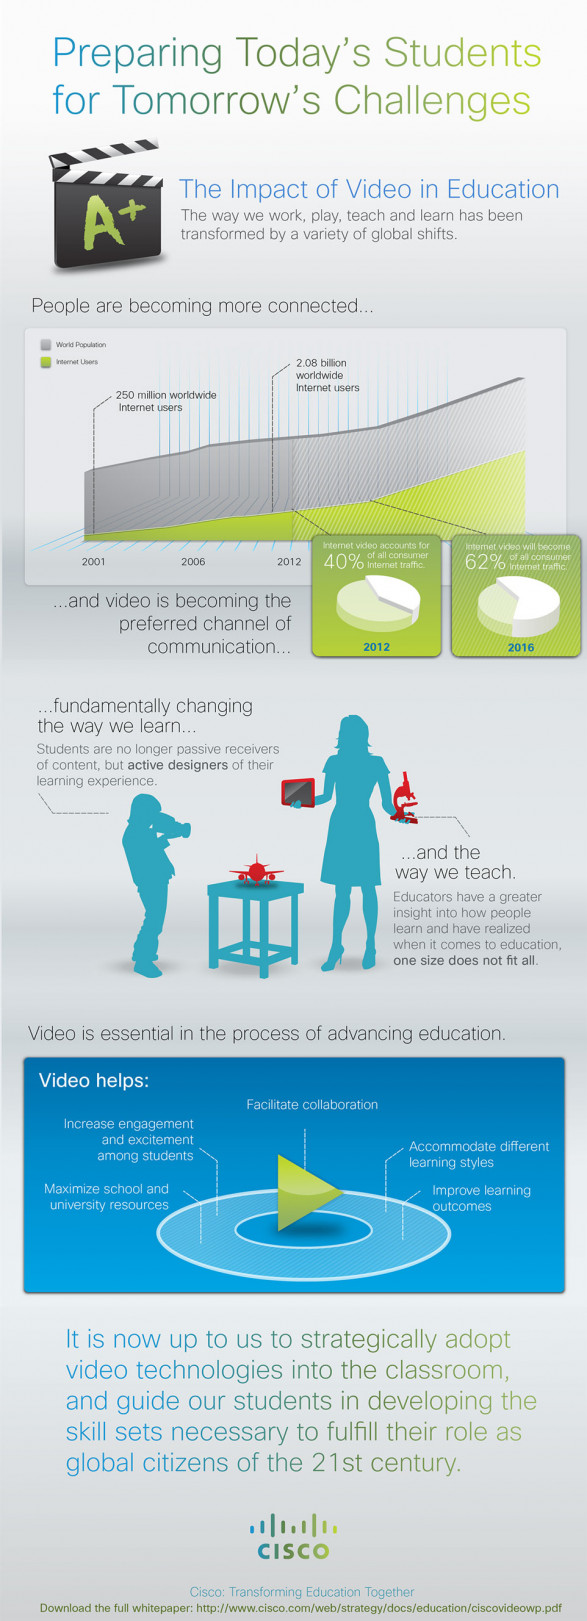 The Impact of Video in Education